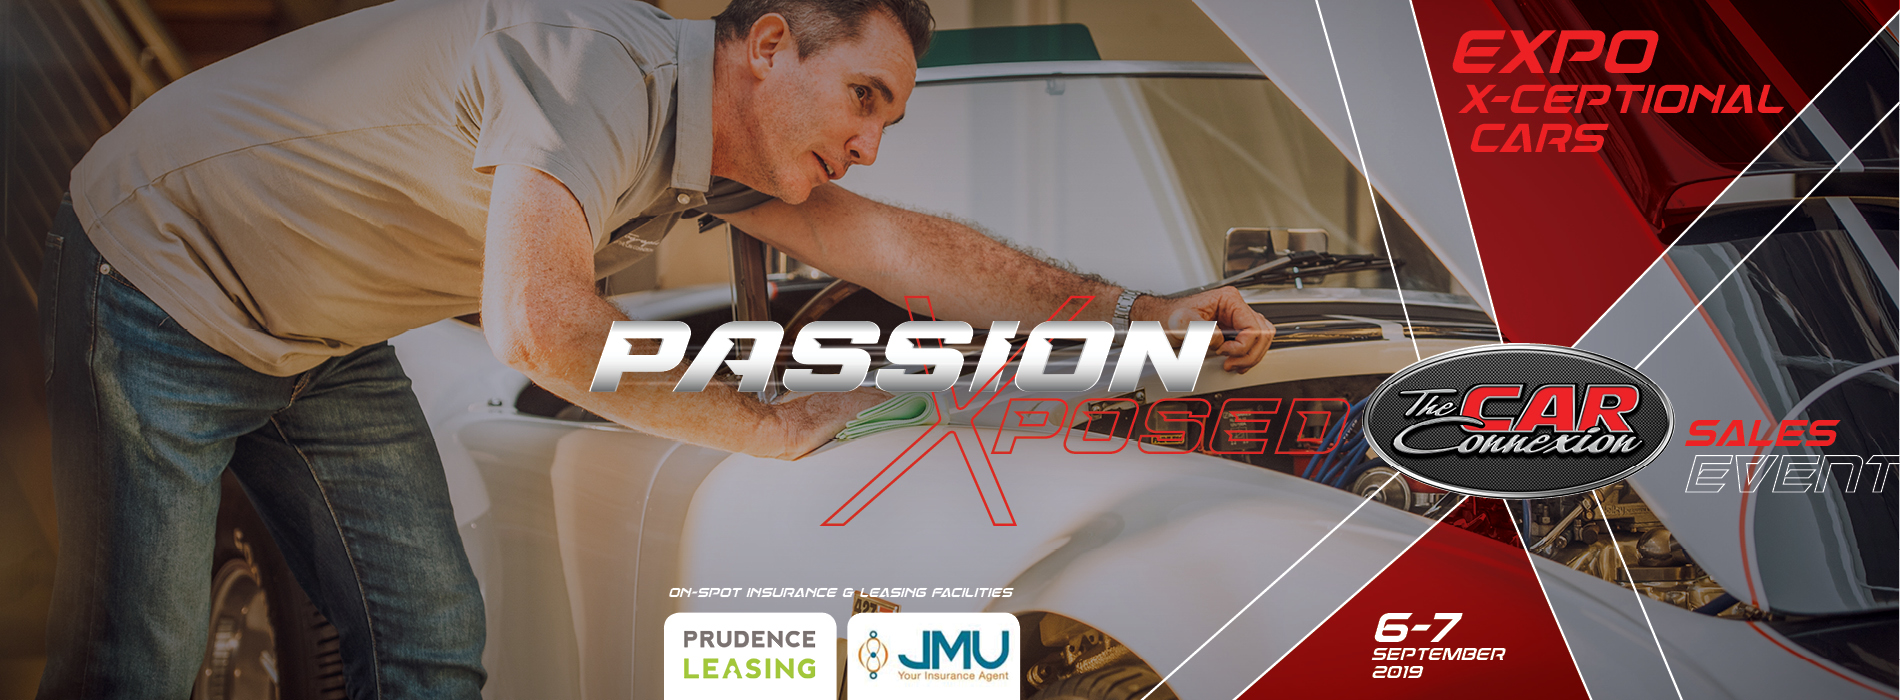 The Car Connexion Passion Xposed